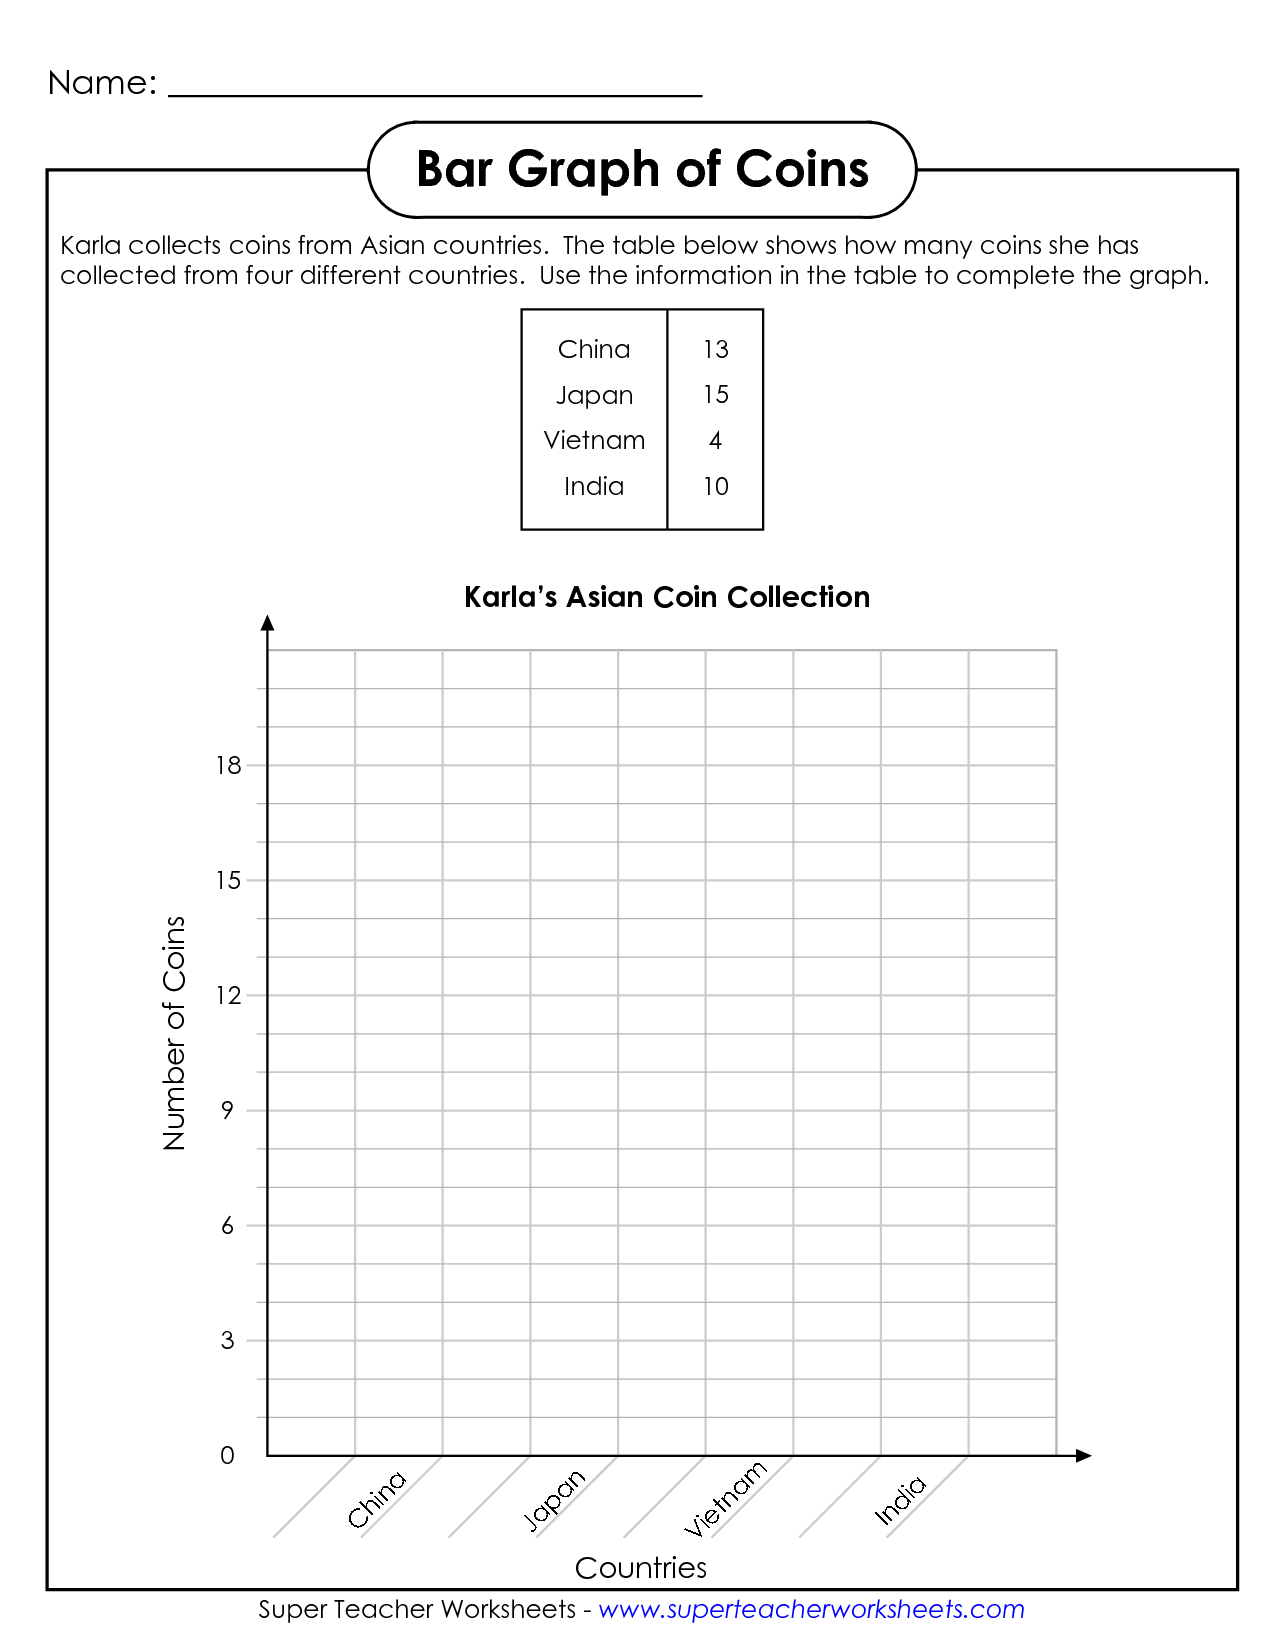 Super Teacher Worksheet Line Plot